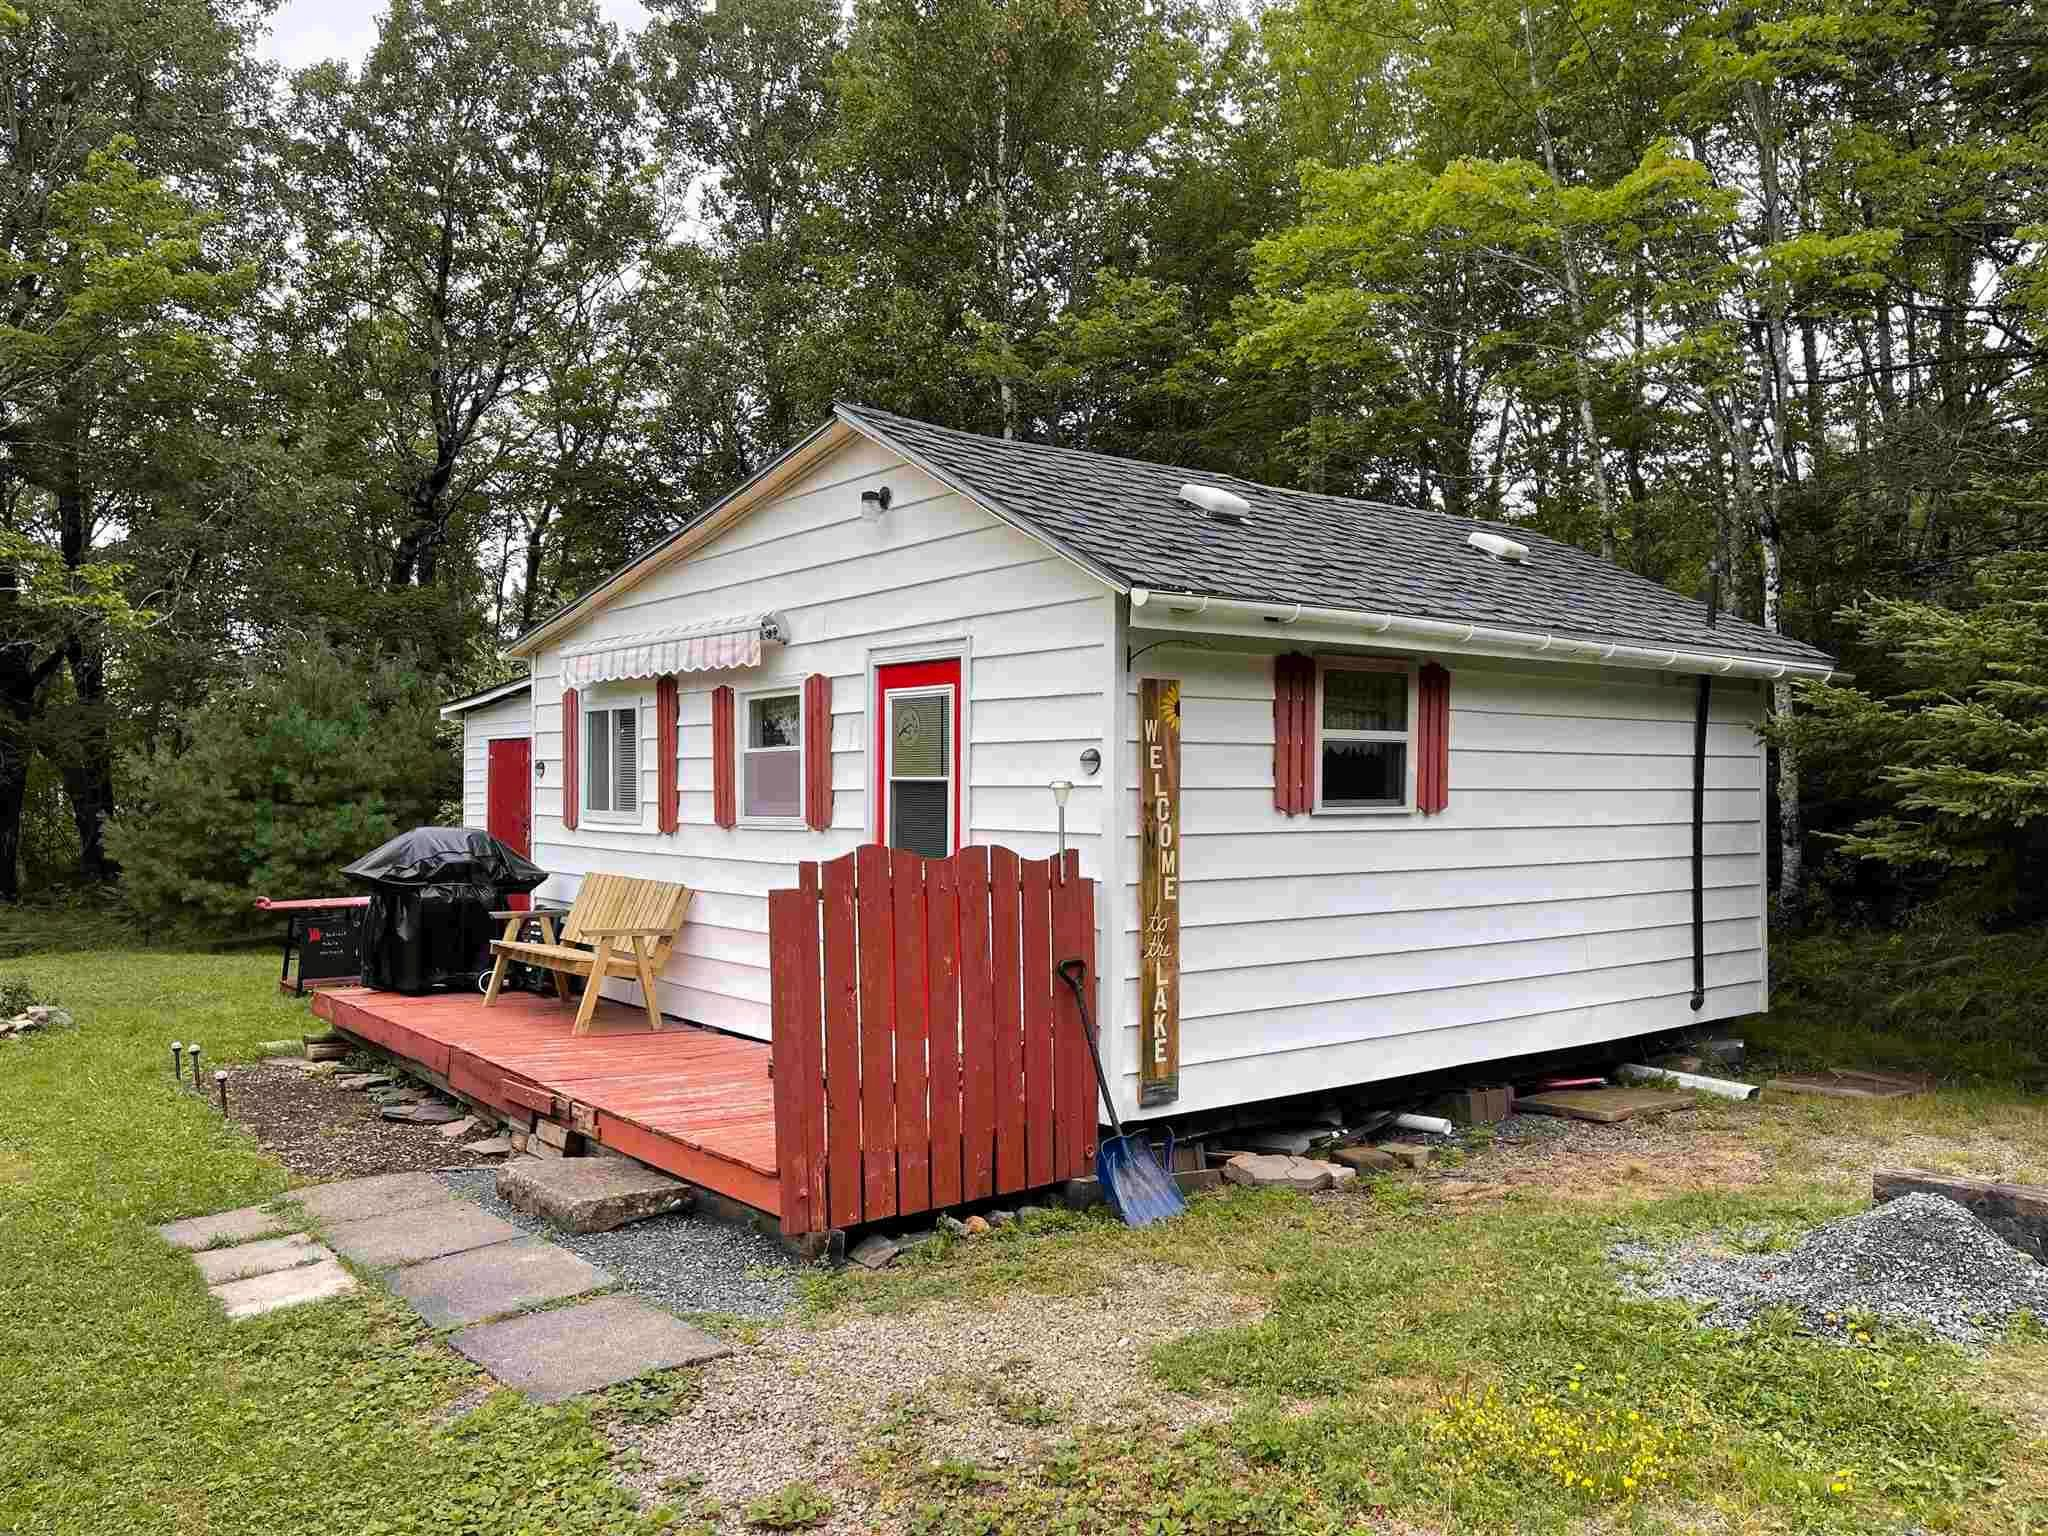 Main Photo: 68 Eden View Road in Eden Lake: 108-Rural Pictou County Residential for sale (Northern Region)  : MLS®# 202121587